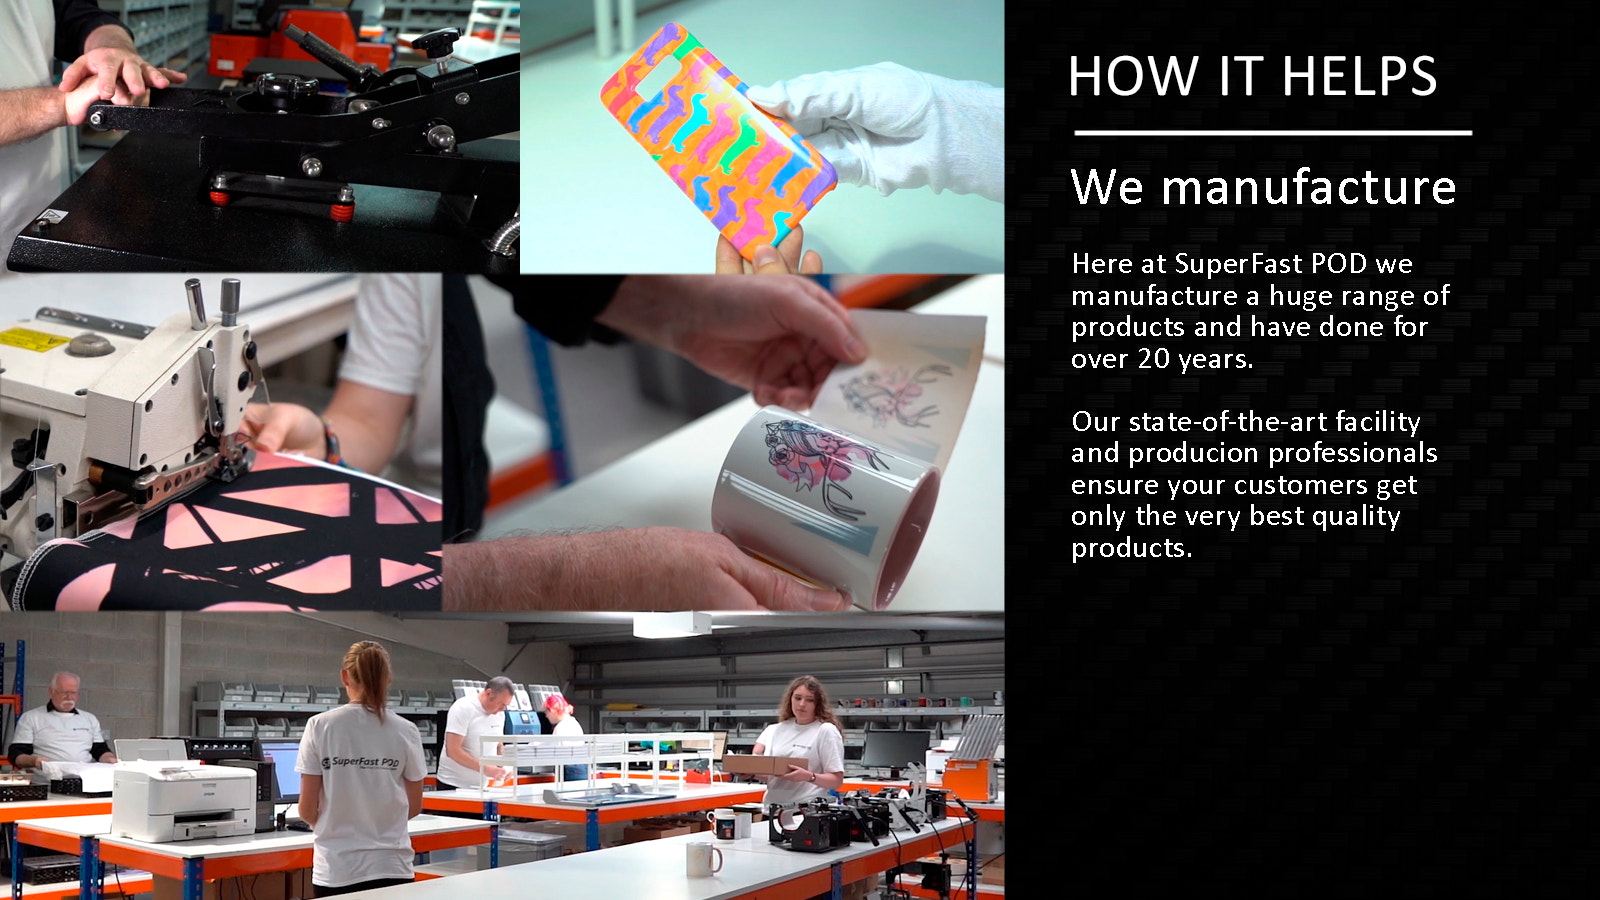 We manufacture